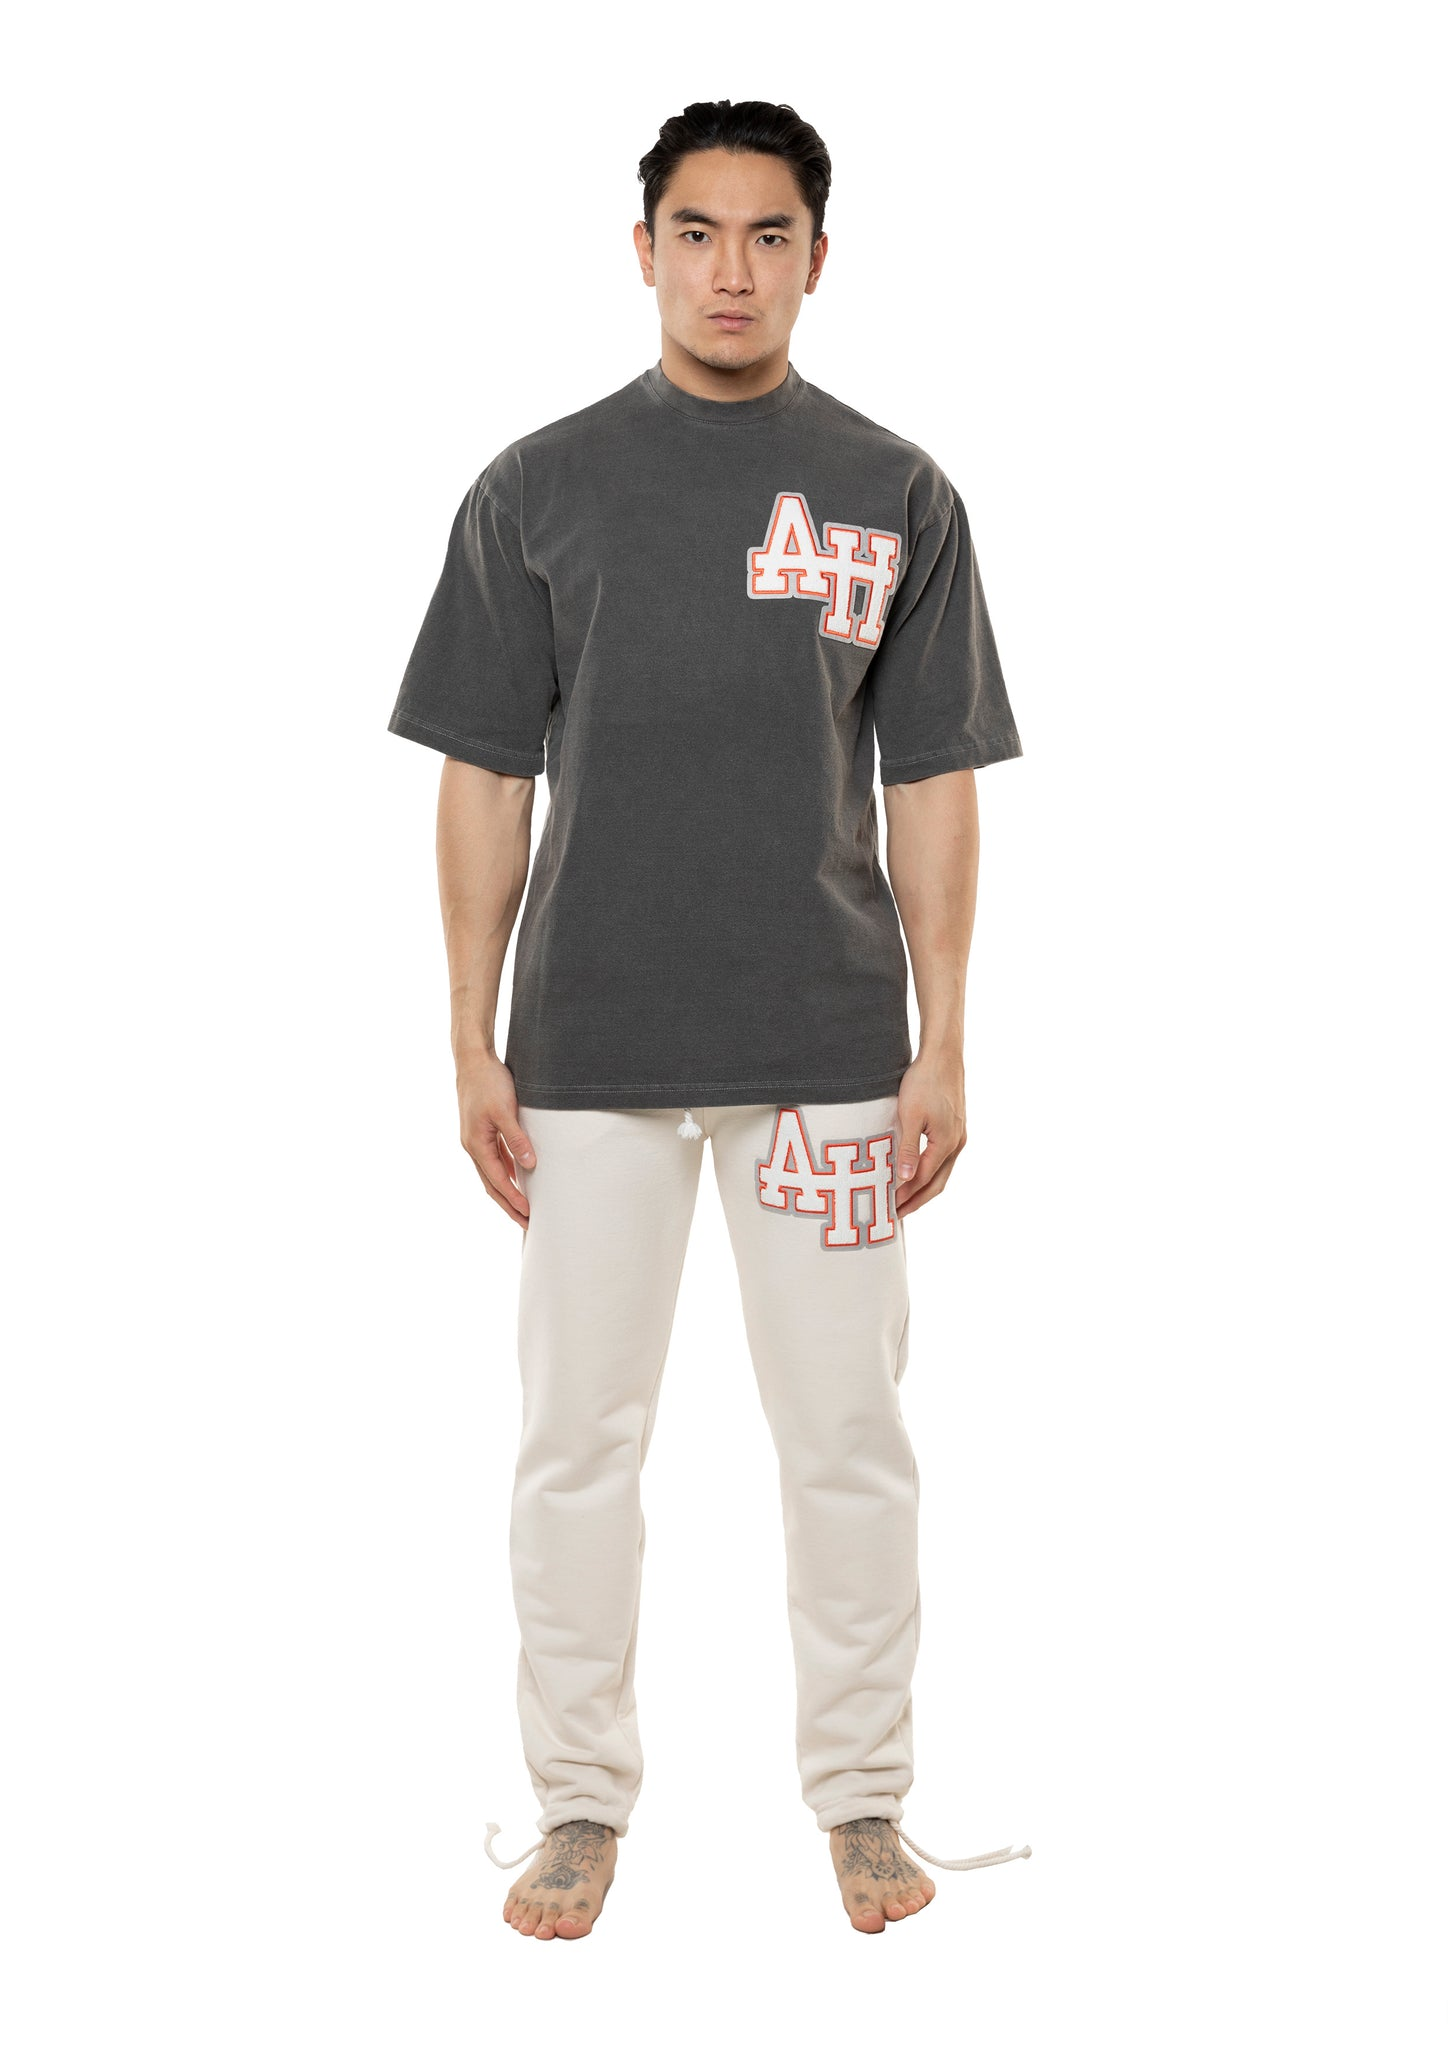 AH COLLEGE TSHIRT - WASHED BLACK